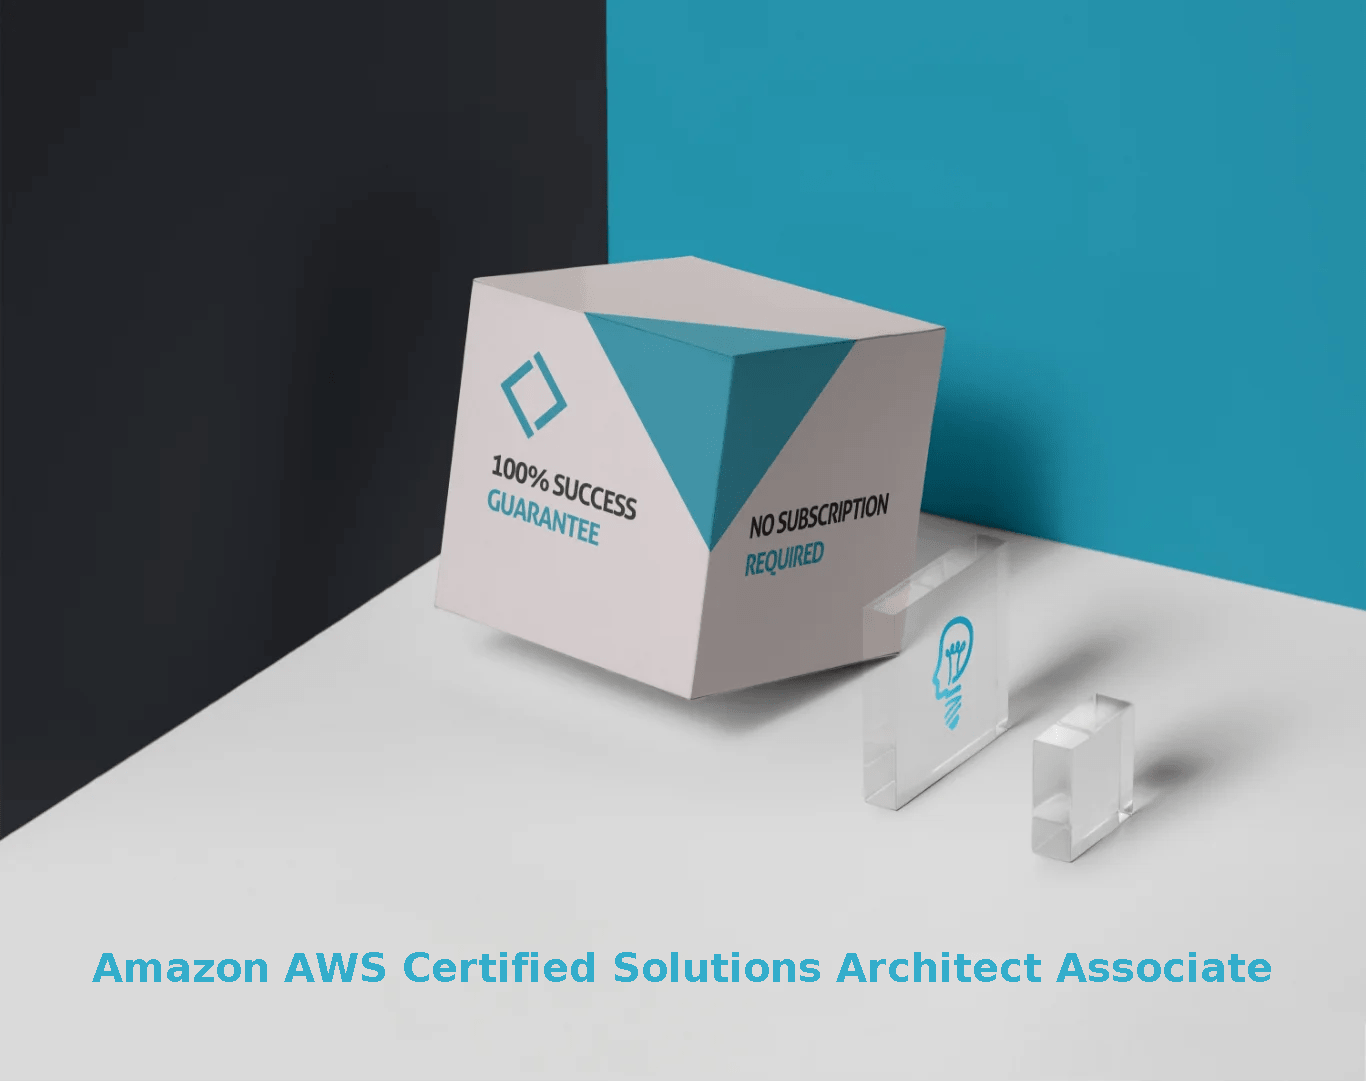 Amazon AWS Certified Solutions Architect Associate Exams